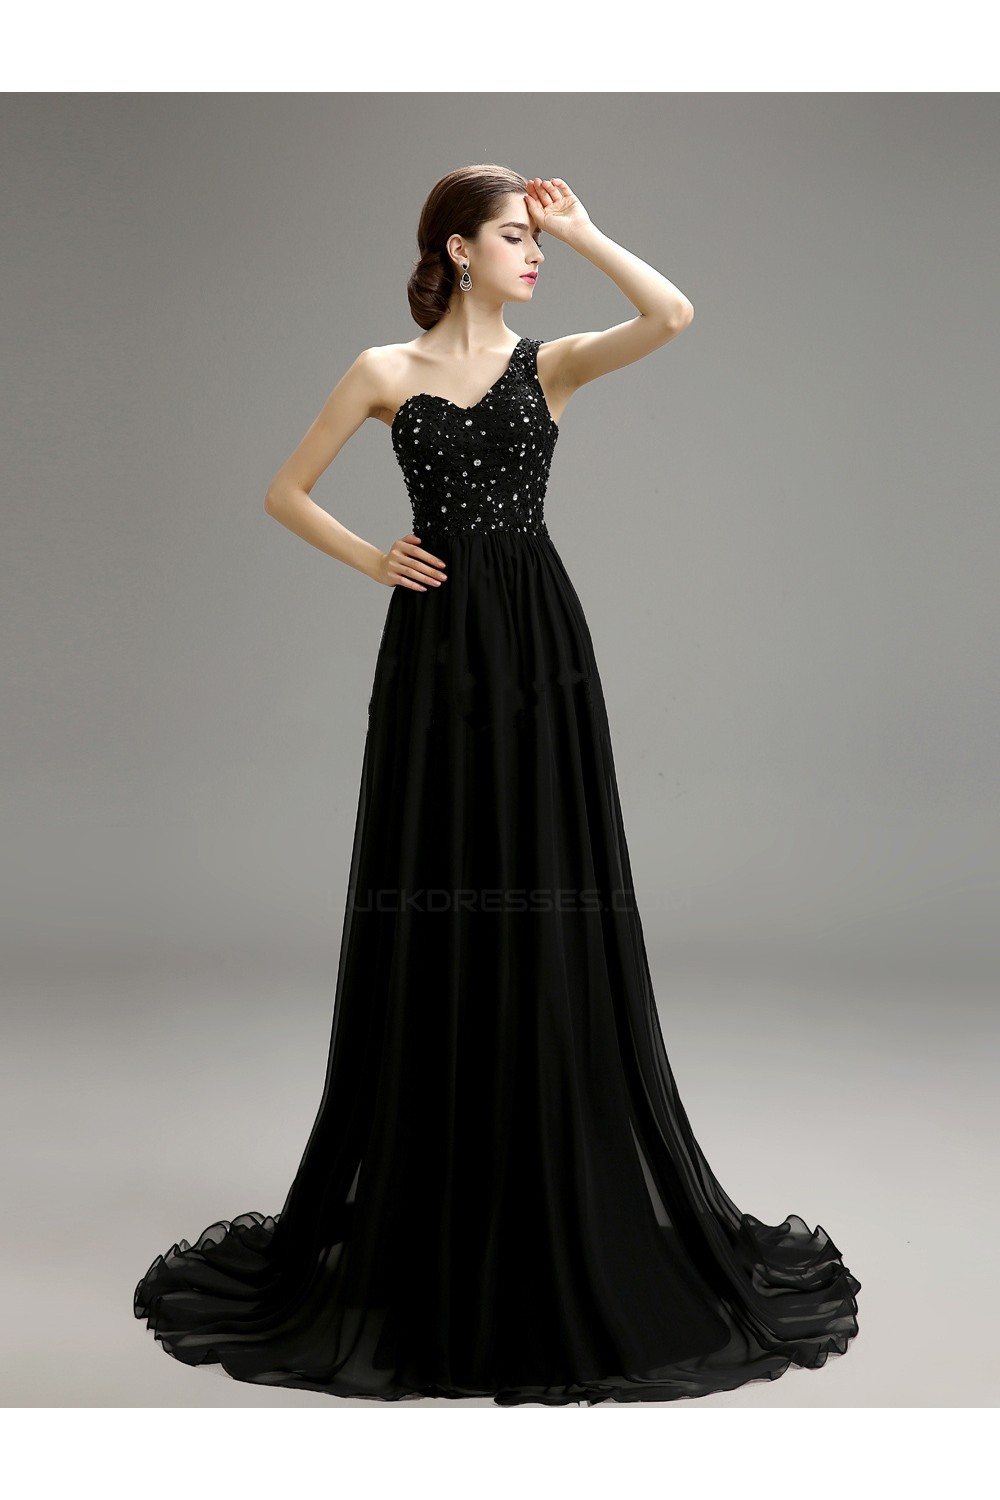 32a1809bf7a A-Line One-Shoulder Beaded Long Black Chiffon Prom Evening ...